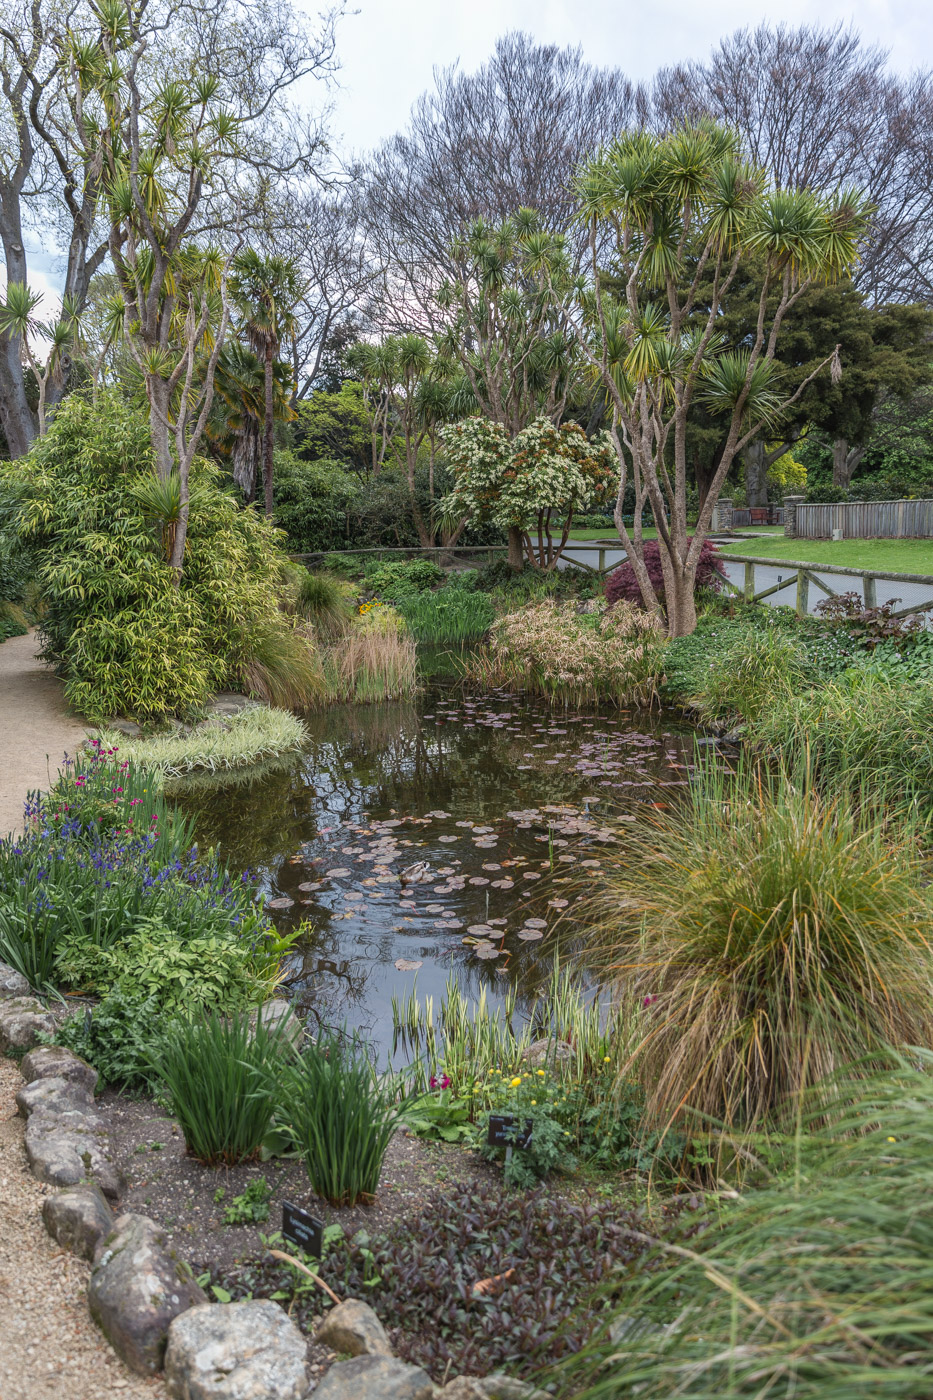 Small pond and bridge at the Dunedin Botanical Gardens, South Island, New Zealand